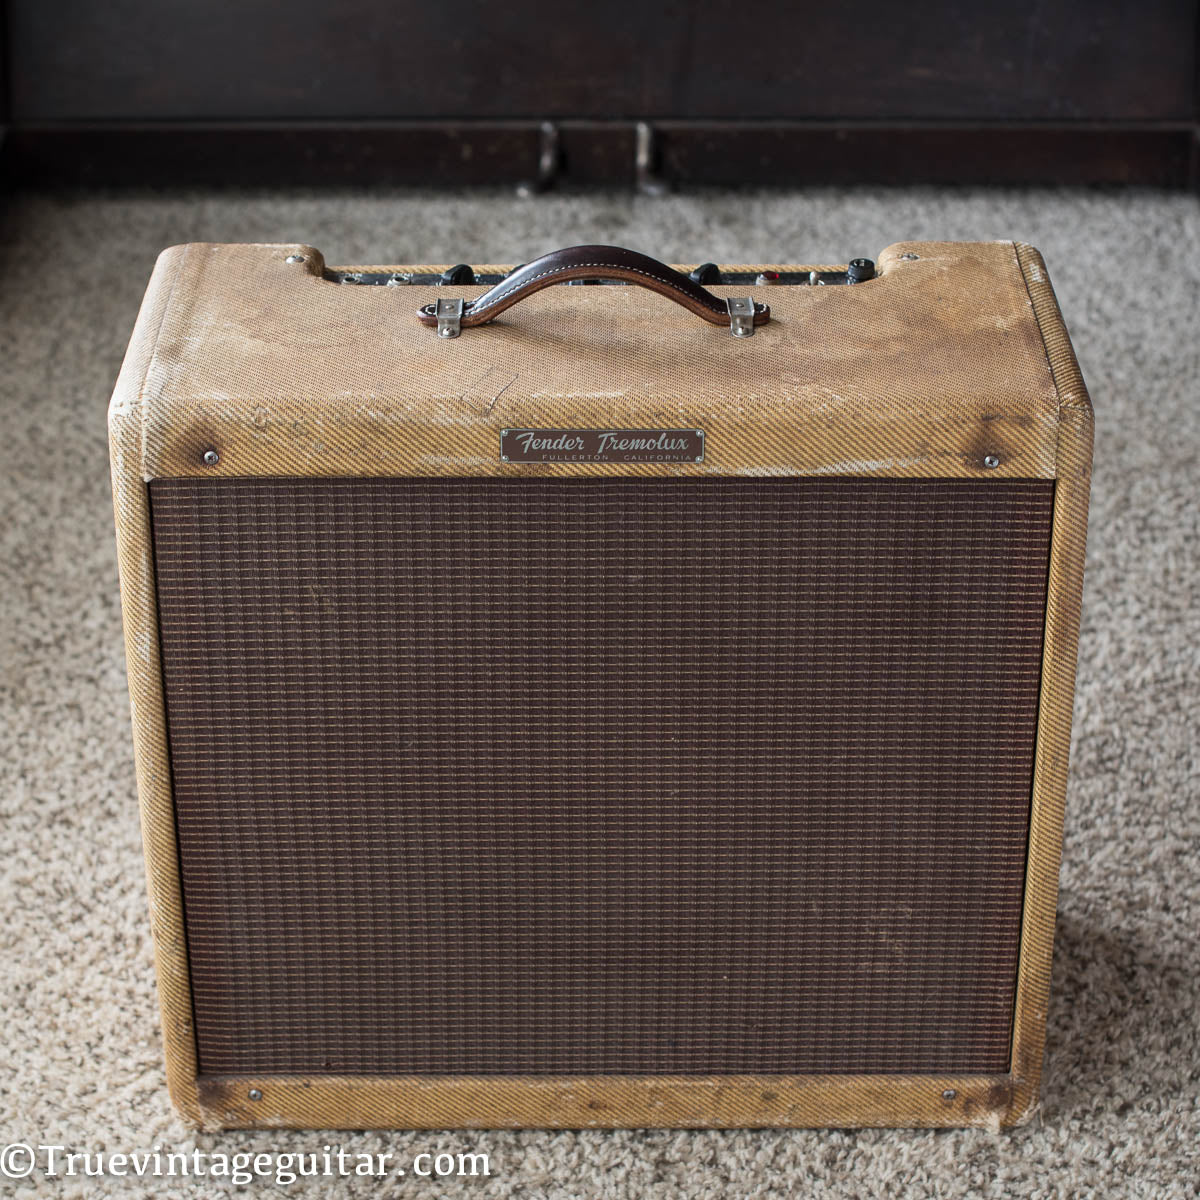 Vintage 1960 Fender Tremolux 5G9 Guitar Amplifier